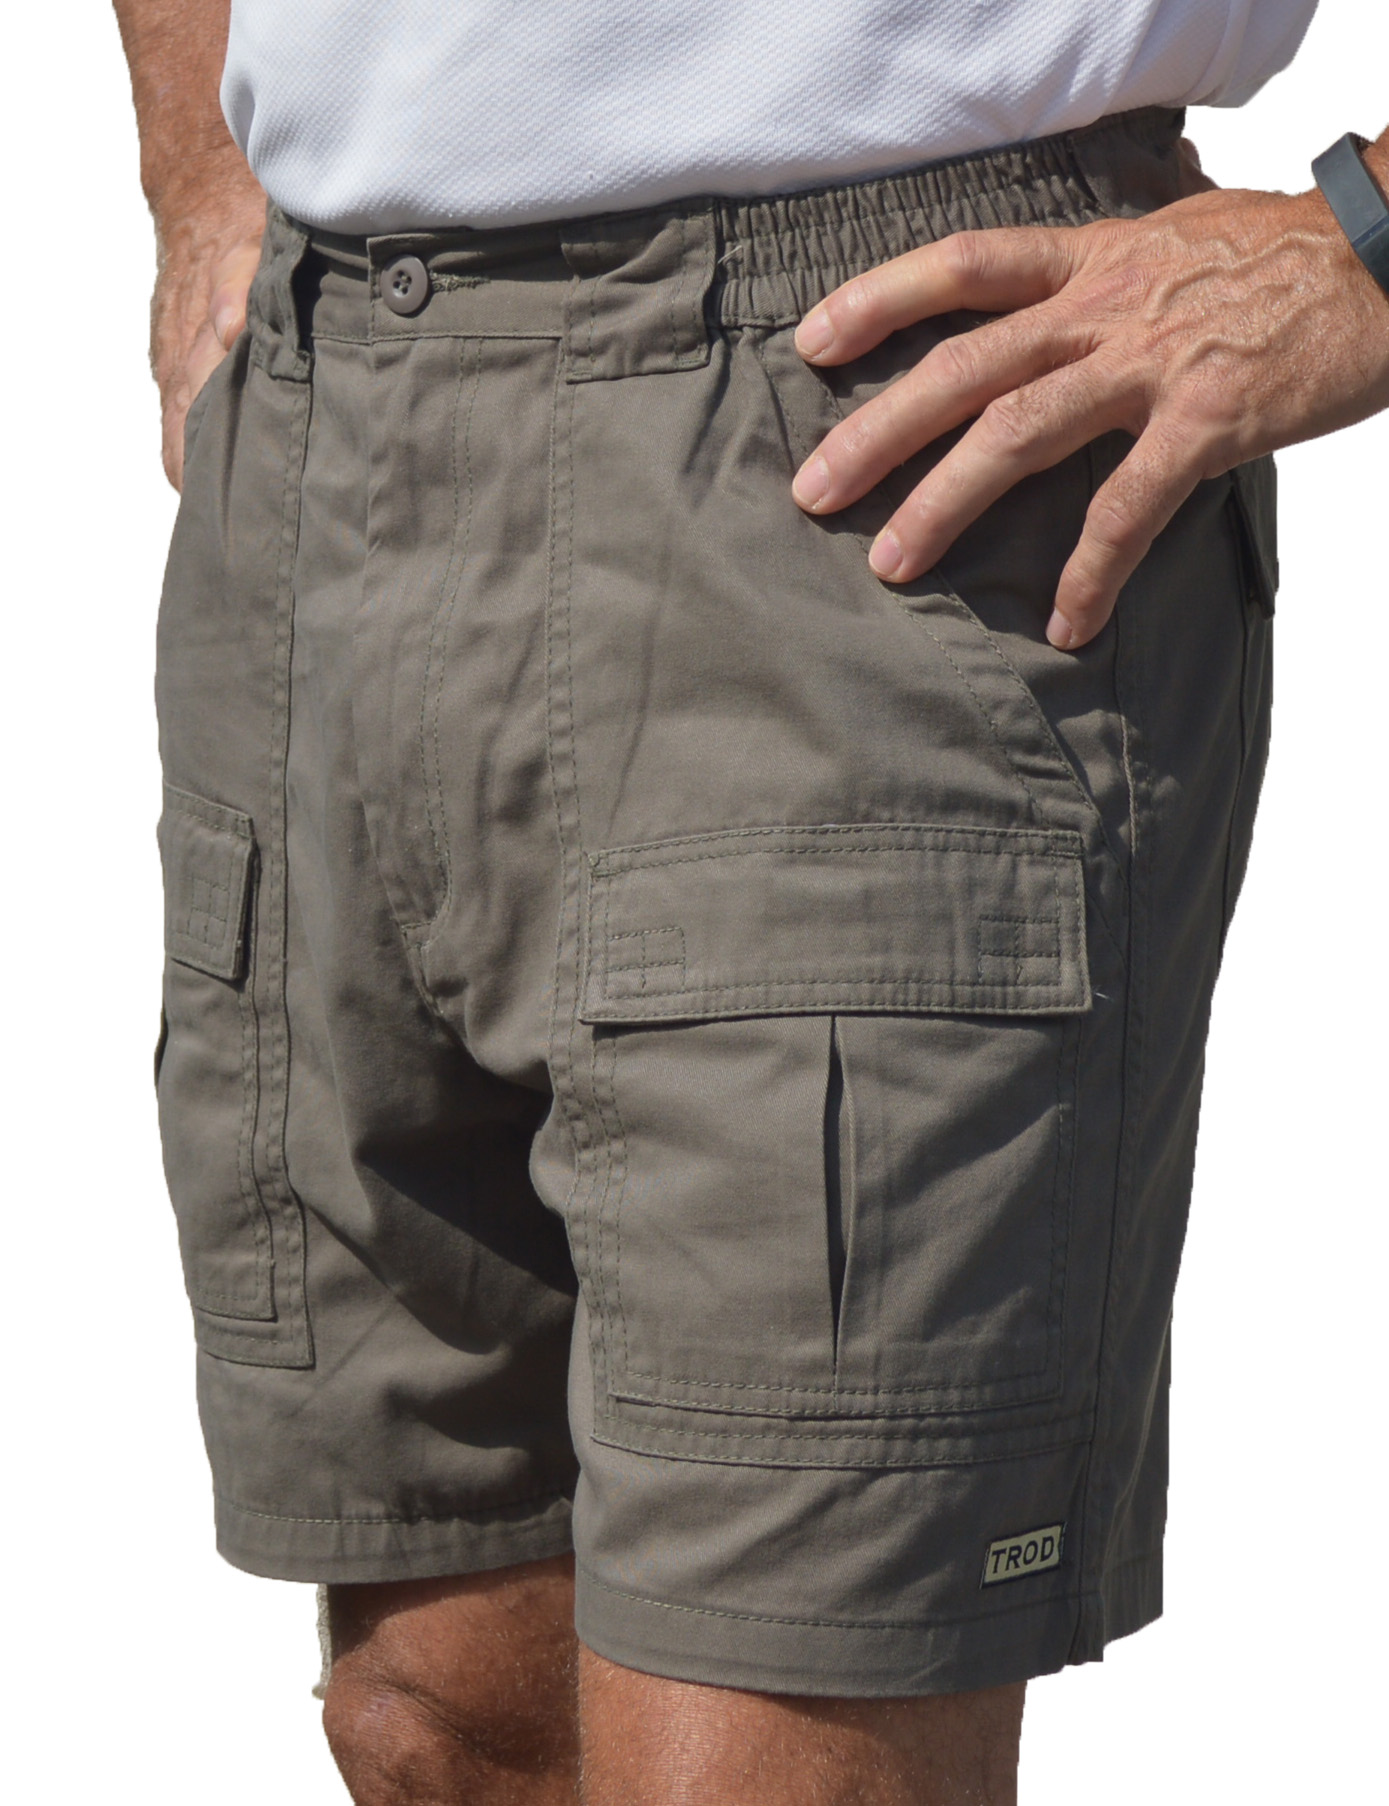 TROD Men's Cargo with 6